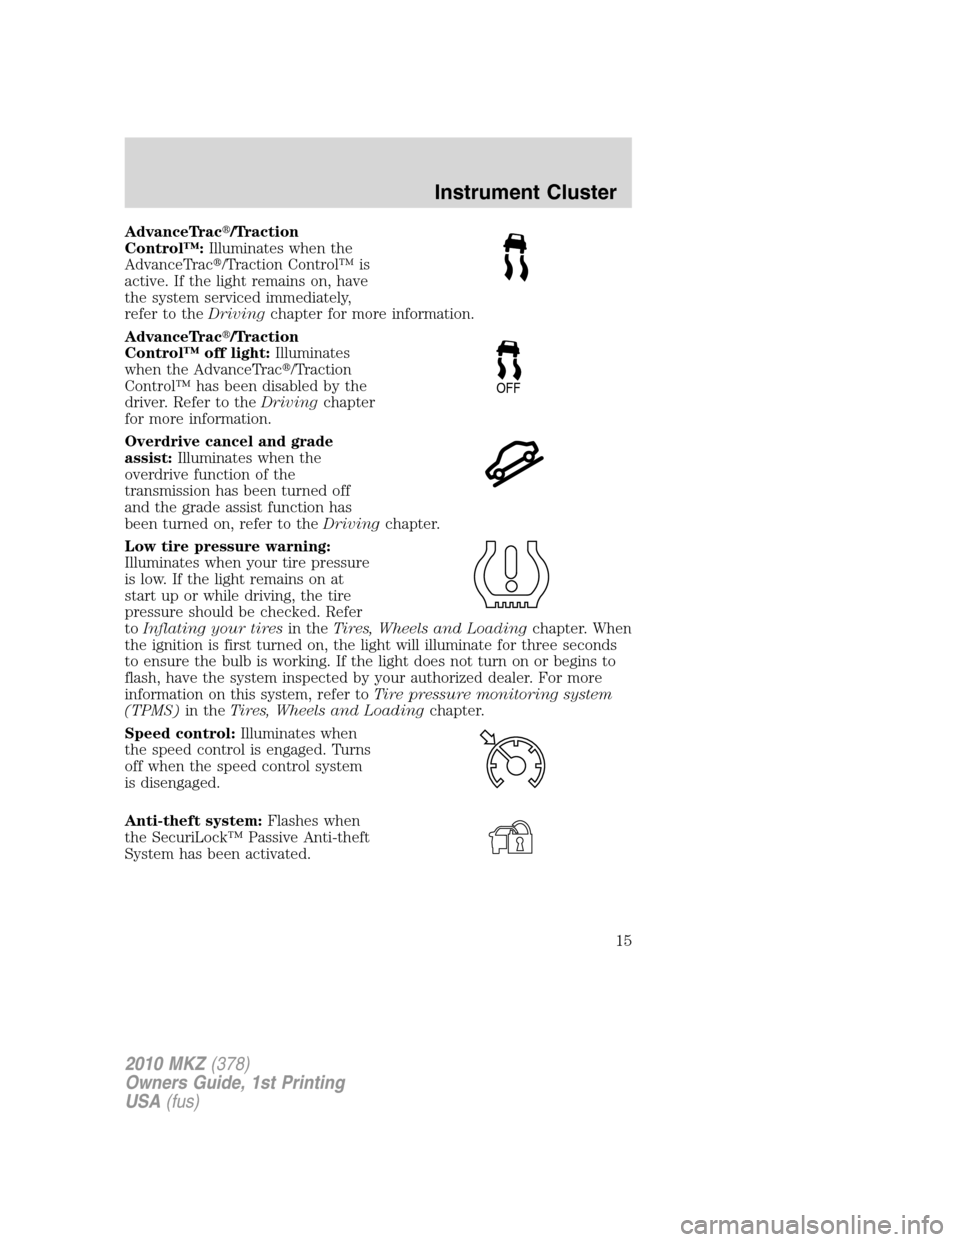 traction control LINCOLN MKZ 2010 Owners Manual